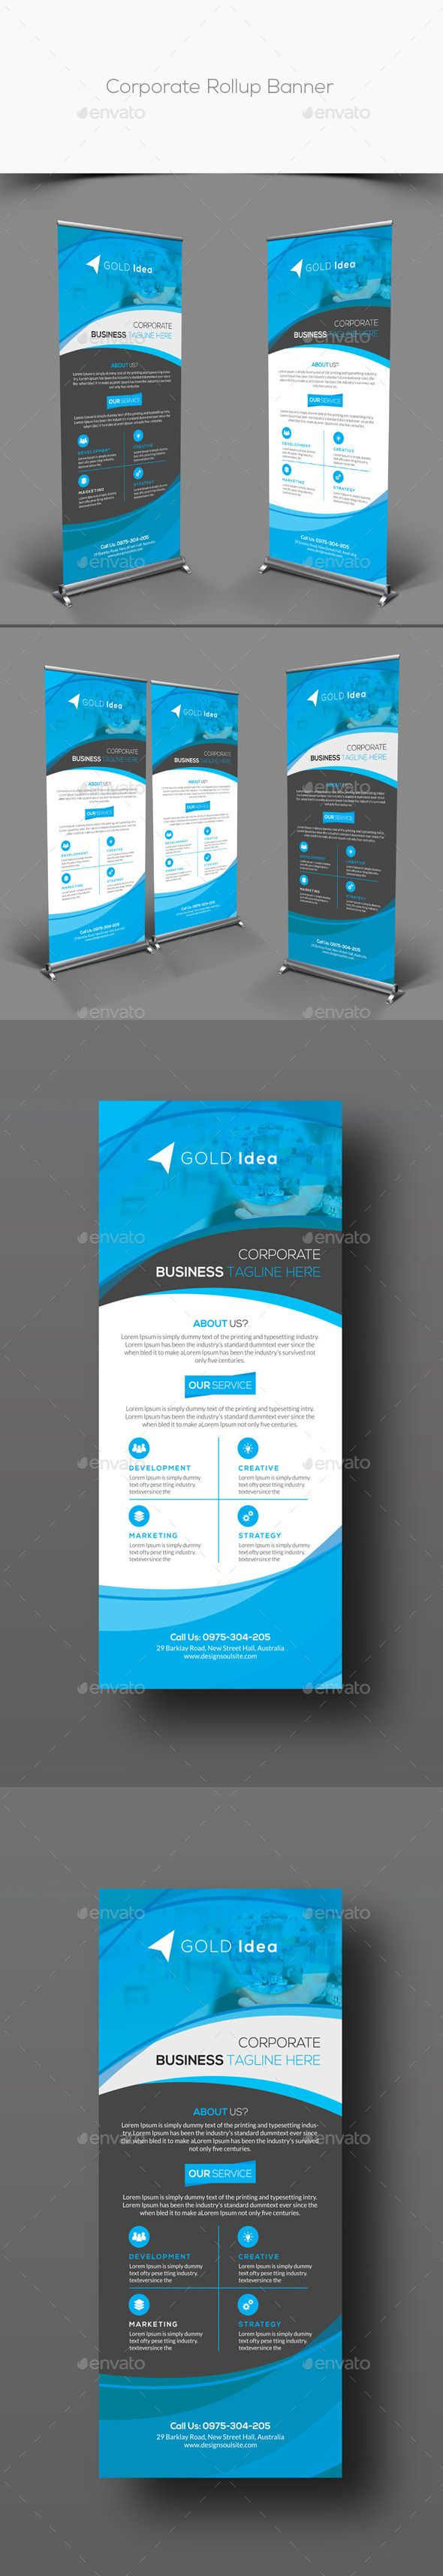 Corporate Rollup Banner Template #design Download: http://graphicriver.net/item/corporate-rollup-banner/12604946?ref=ksioks